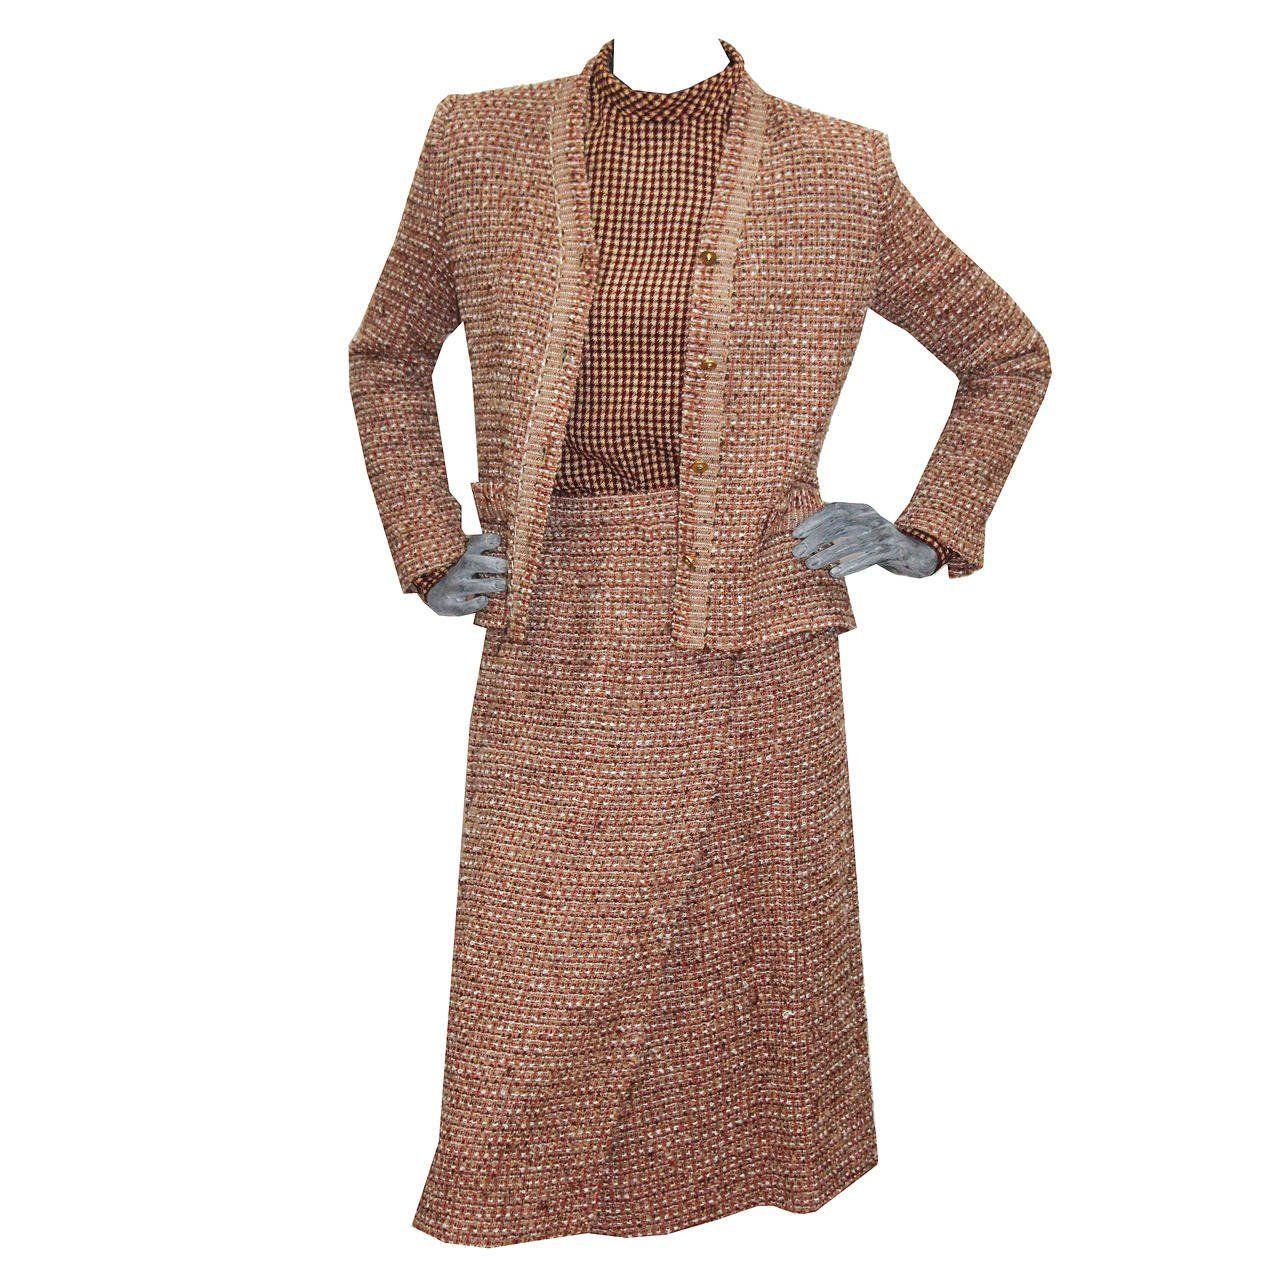 ad2f2cfeaa1 1970s Chic Tweed Chanel Suit Ensemble